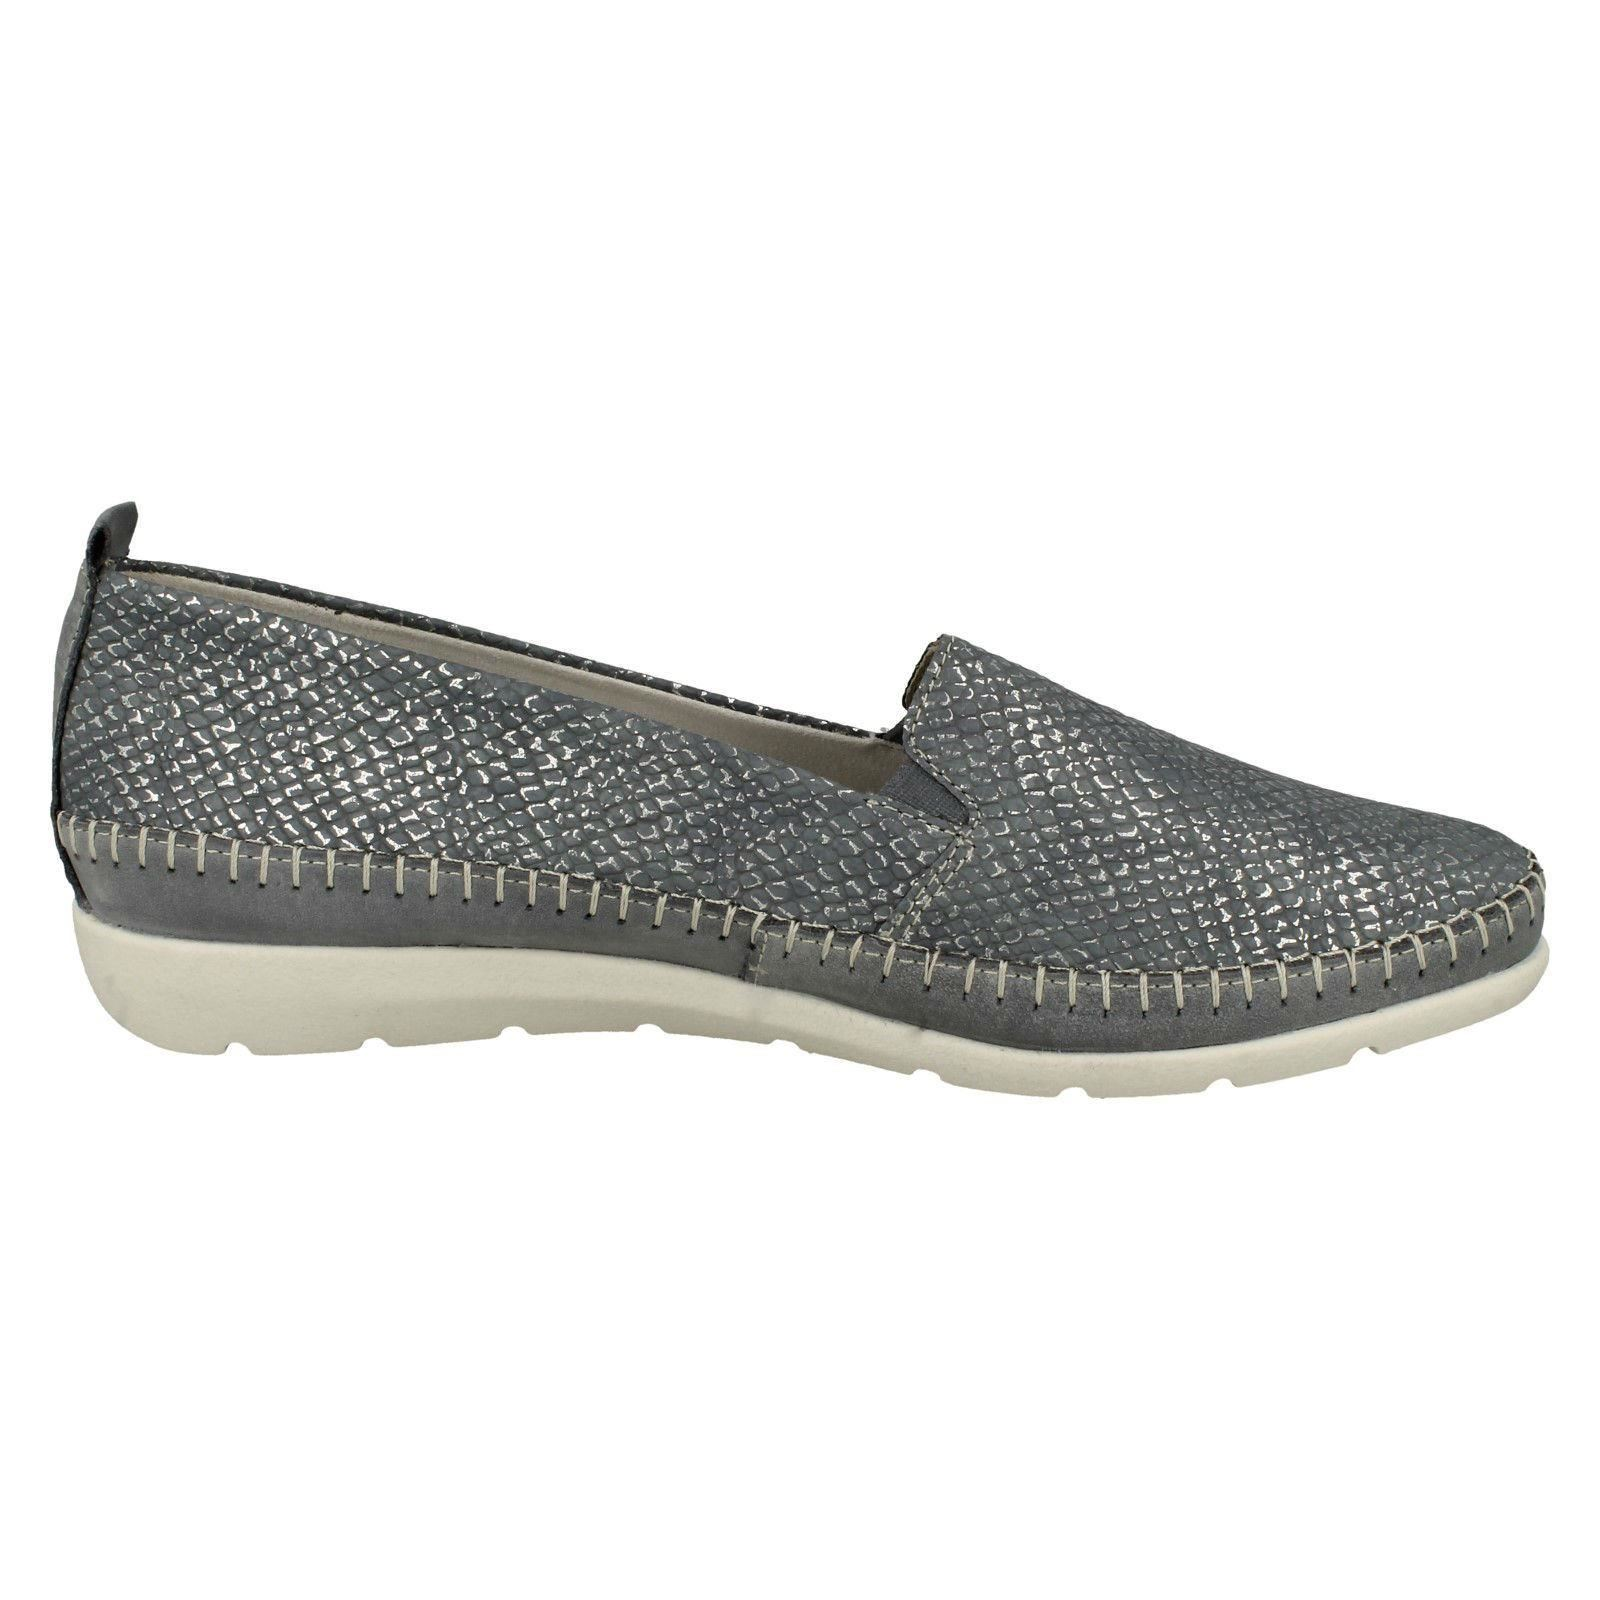 Ladies Remonte Casual Slip On Shoes *D1902*